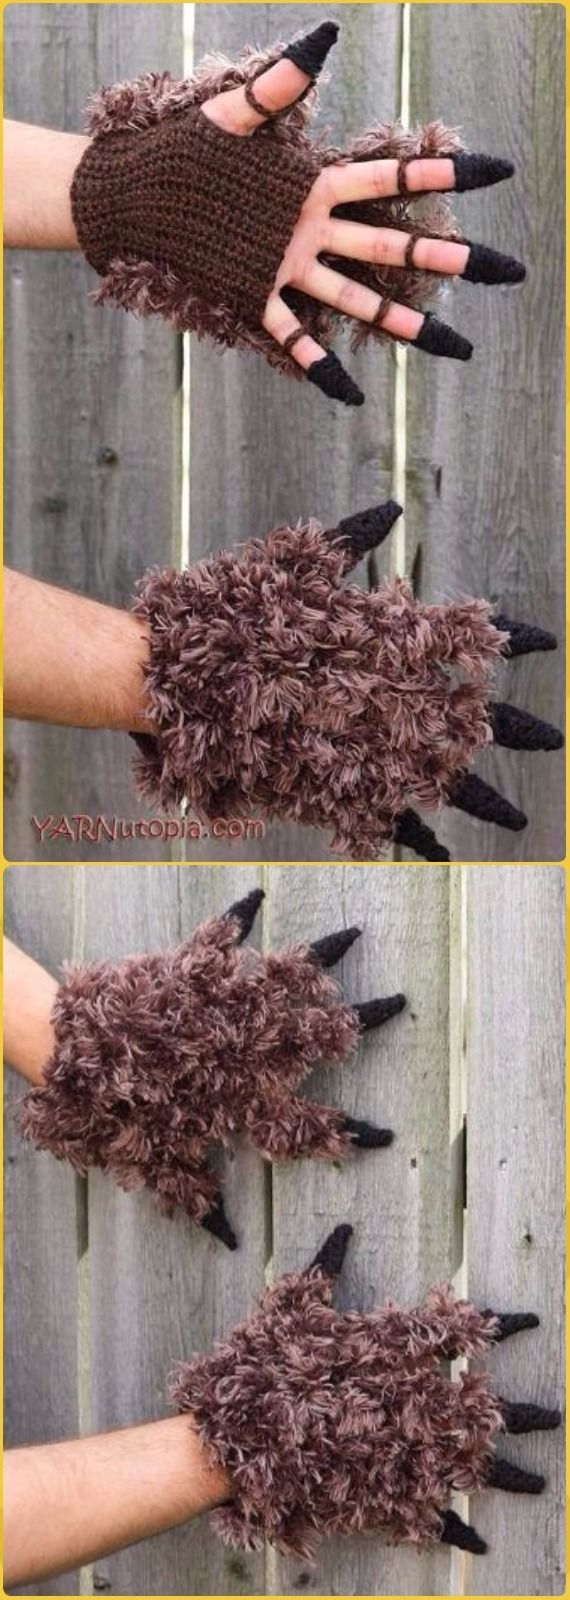 Crochet Beast Costume Gloves Free Pattern - Crochet Arm Warmer Free Patterns